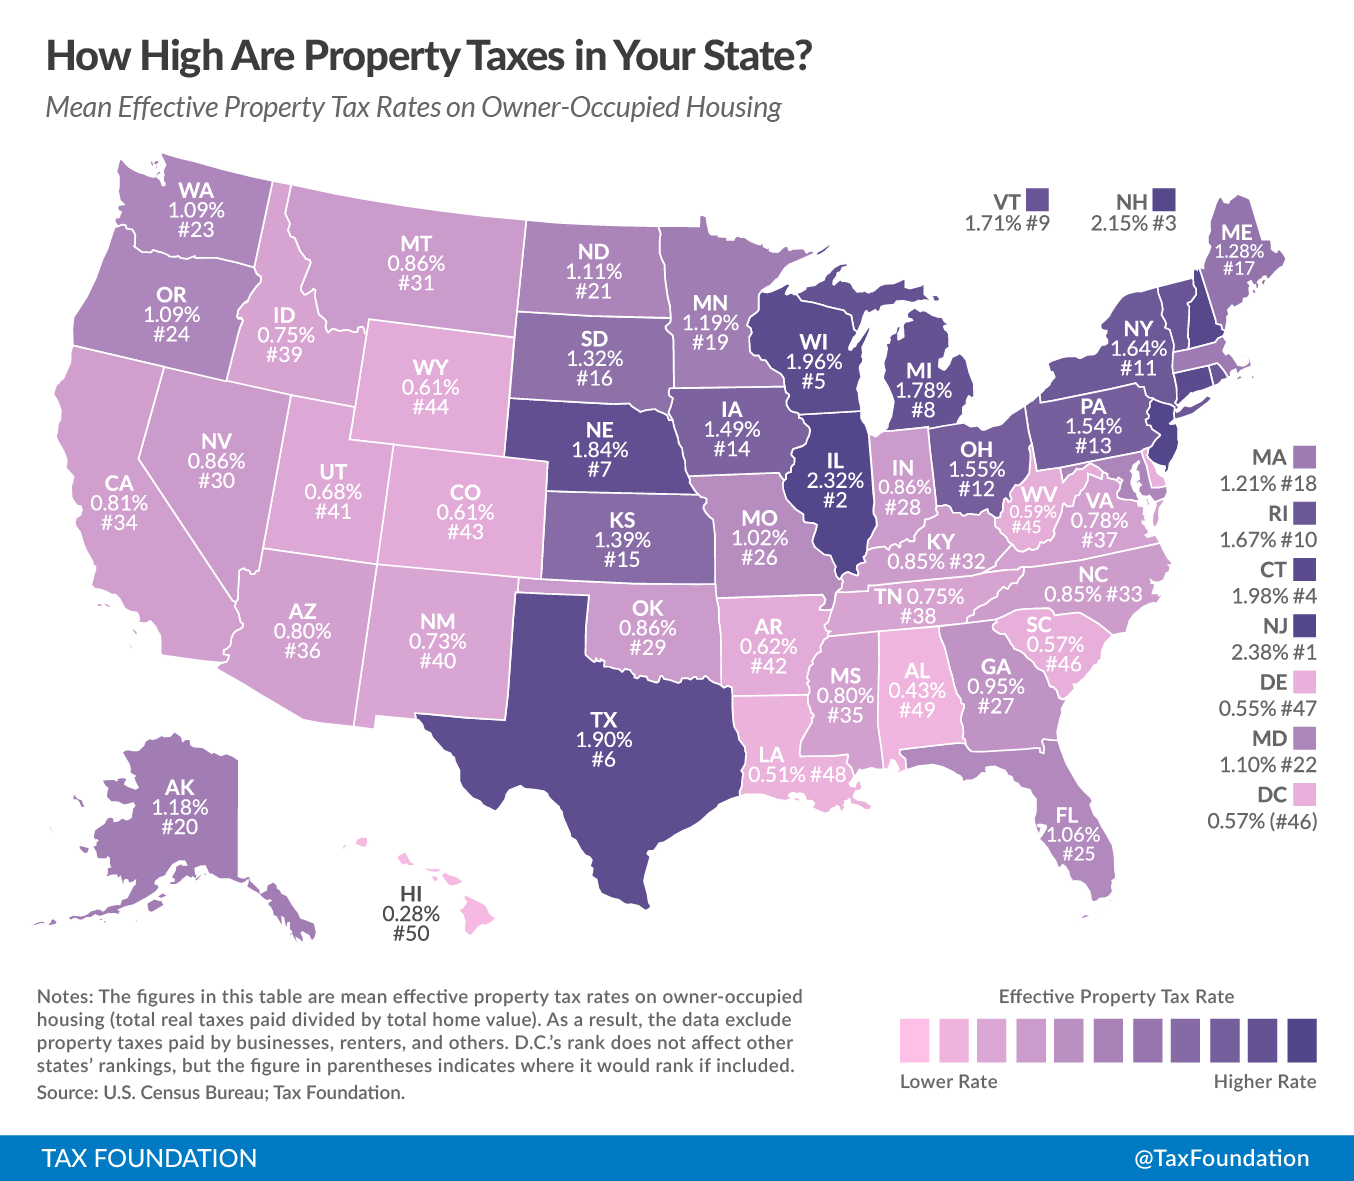 How High Are Property Taxes in Your State Tax Foundation